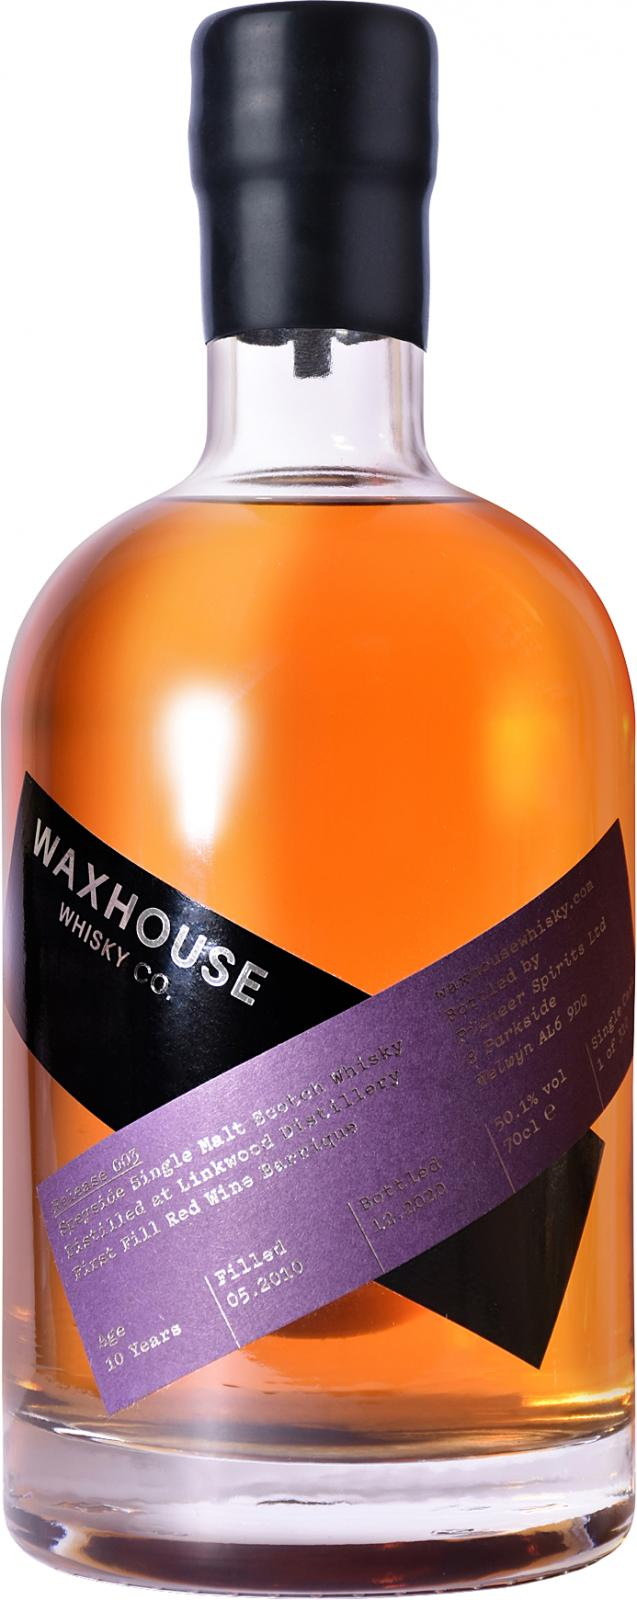 The Dramble reviews Waxhouse Whisky Linkwood 2010 10 year old